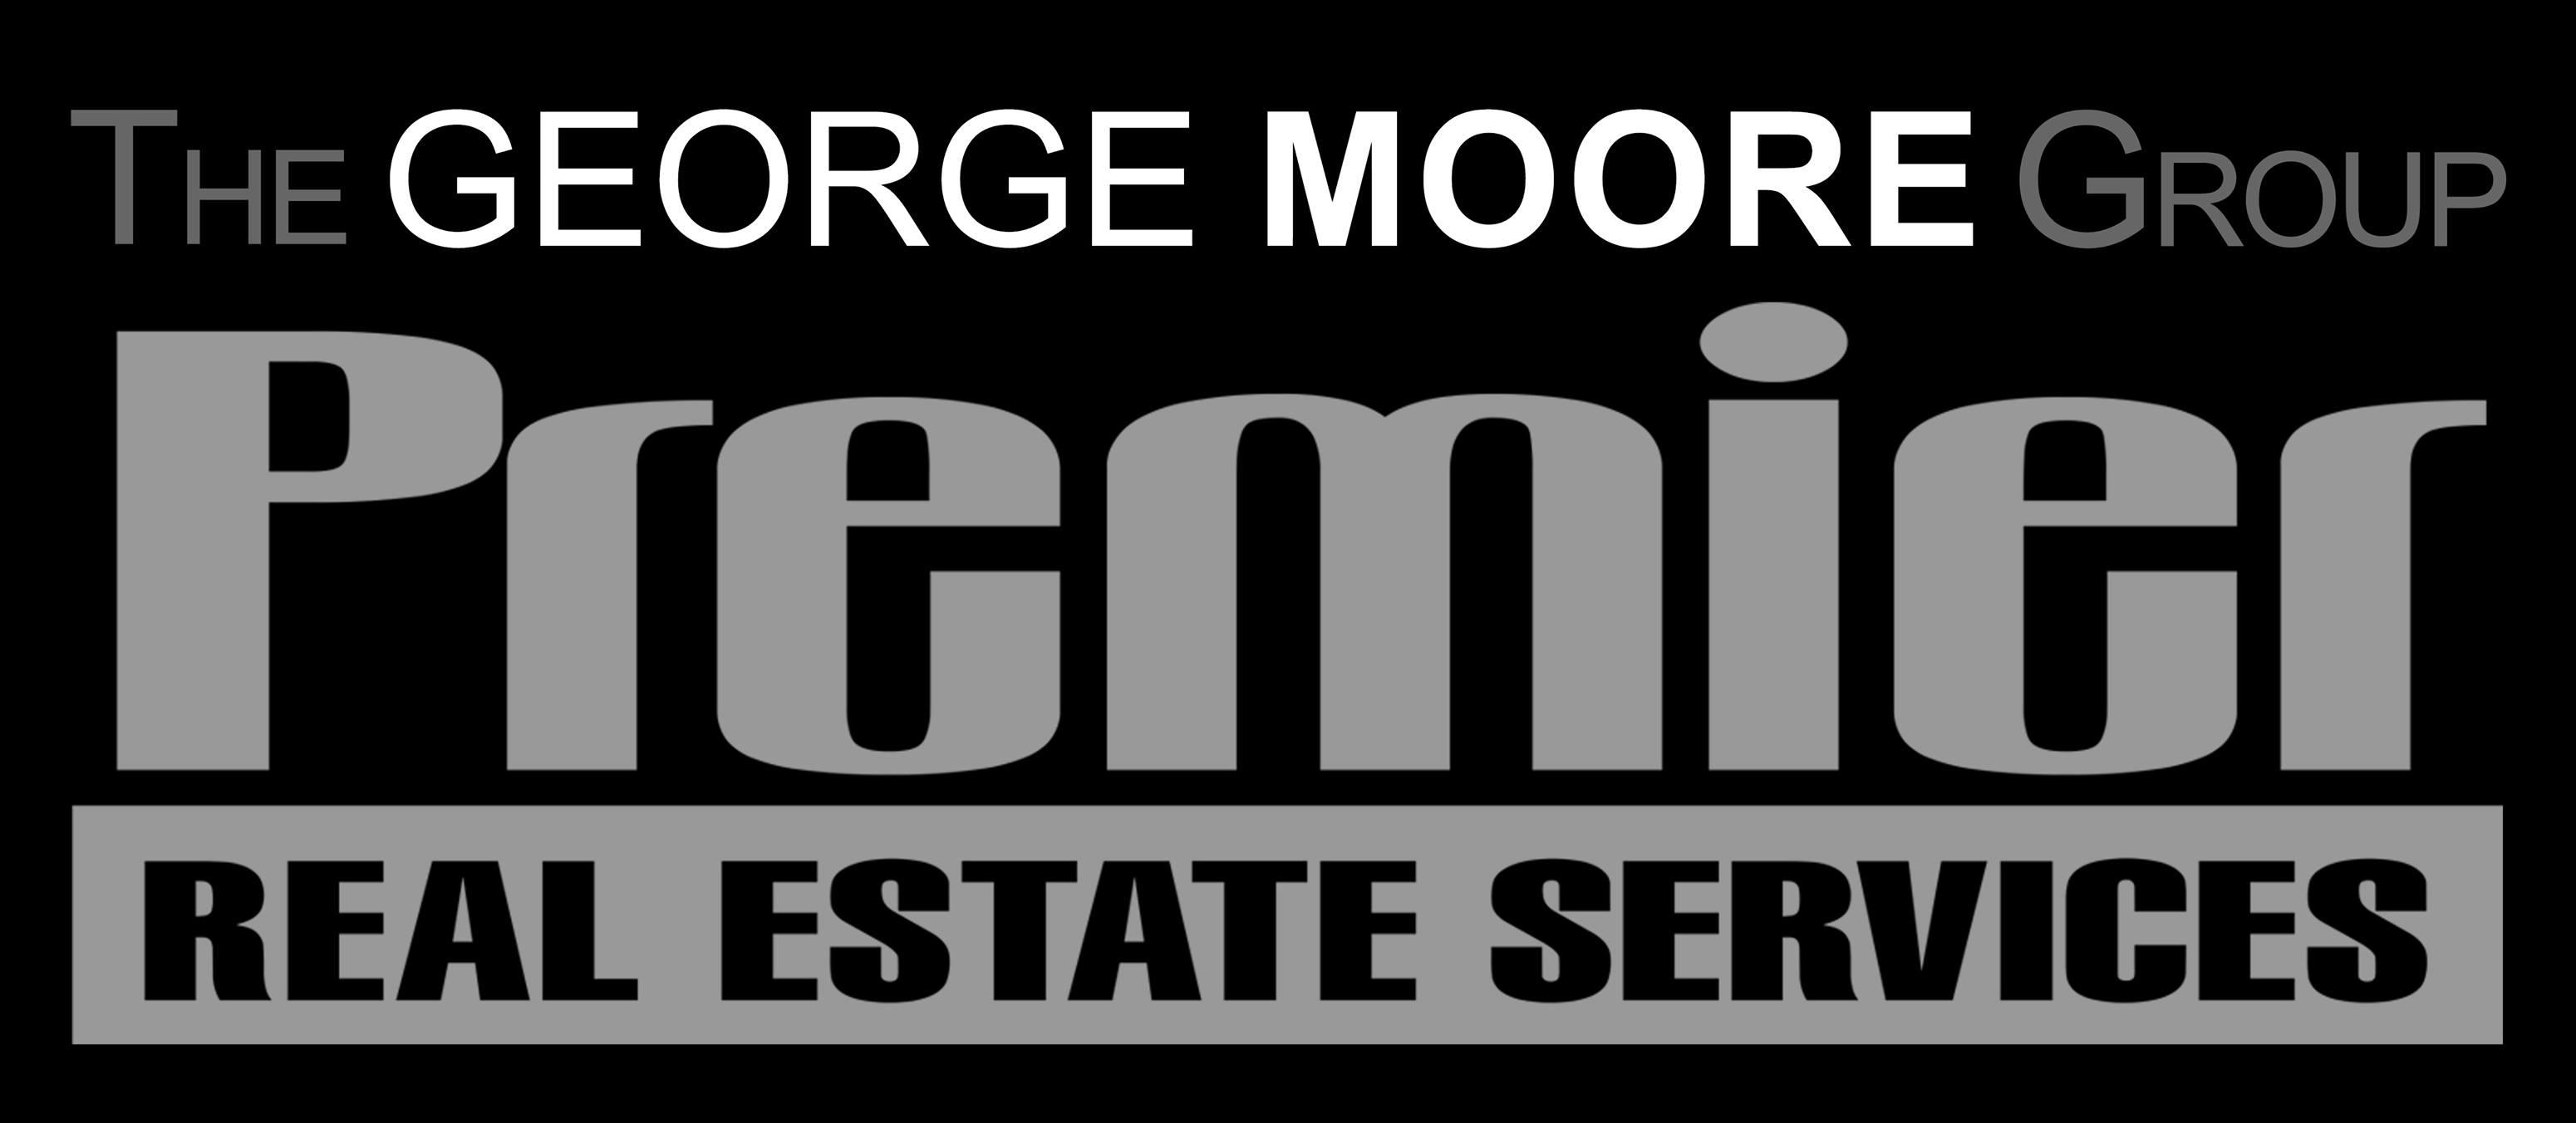 The George Moore Group - Premier Real Estate Services image 1